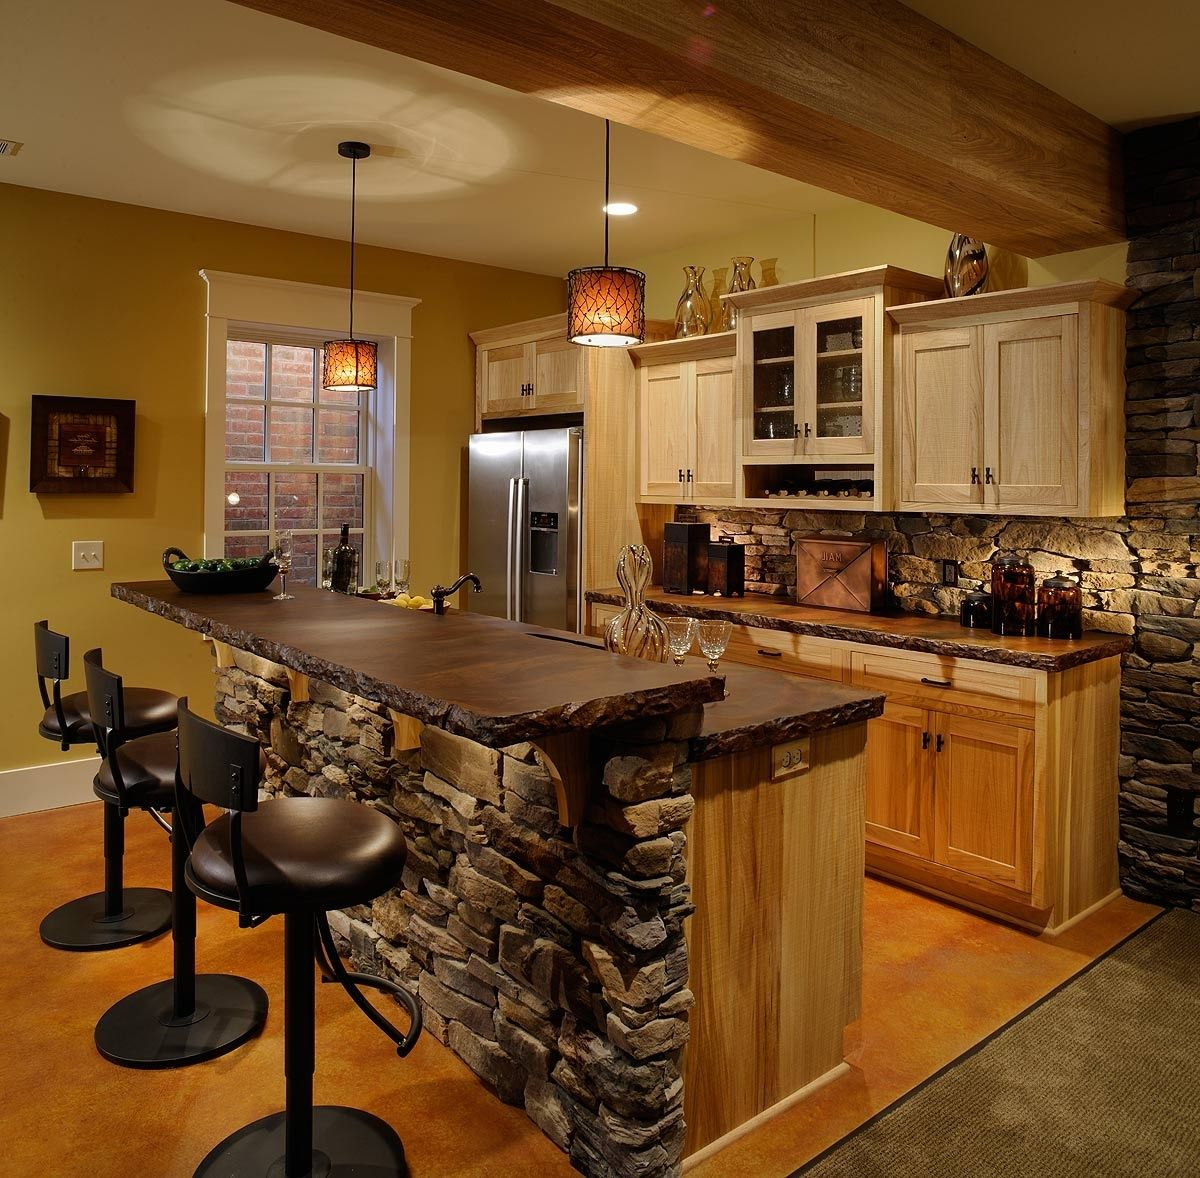 Stylish Small Basement Kitchen Bar Ideas 6511 Downlines Co Small Rustic Kitchens Country Kitchen Designs Rustic Kitchen Design